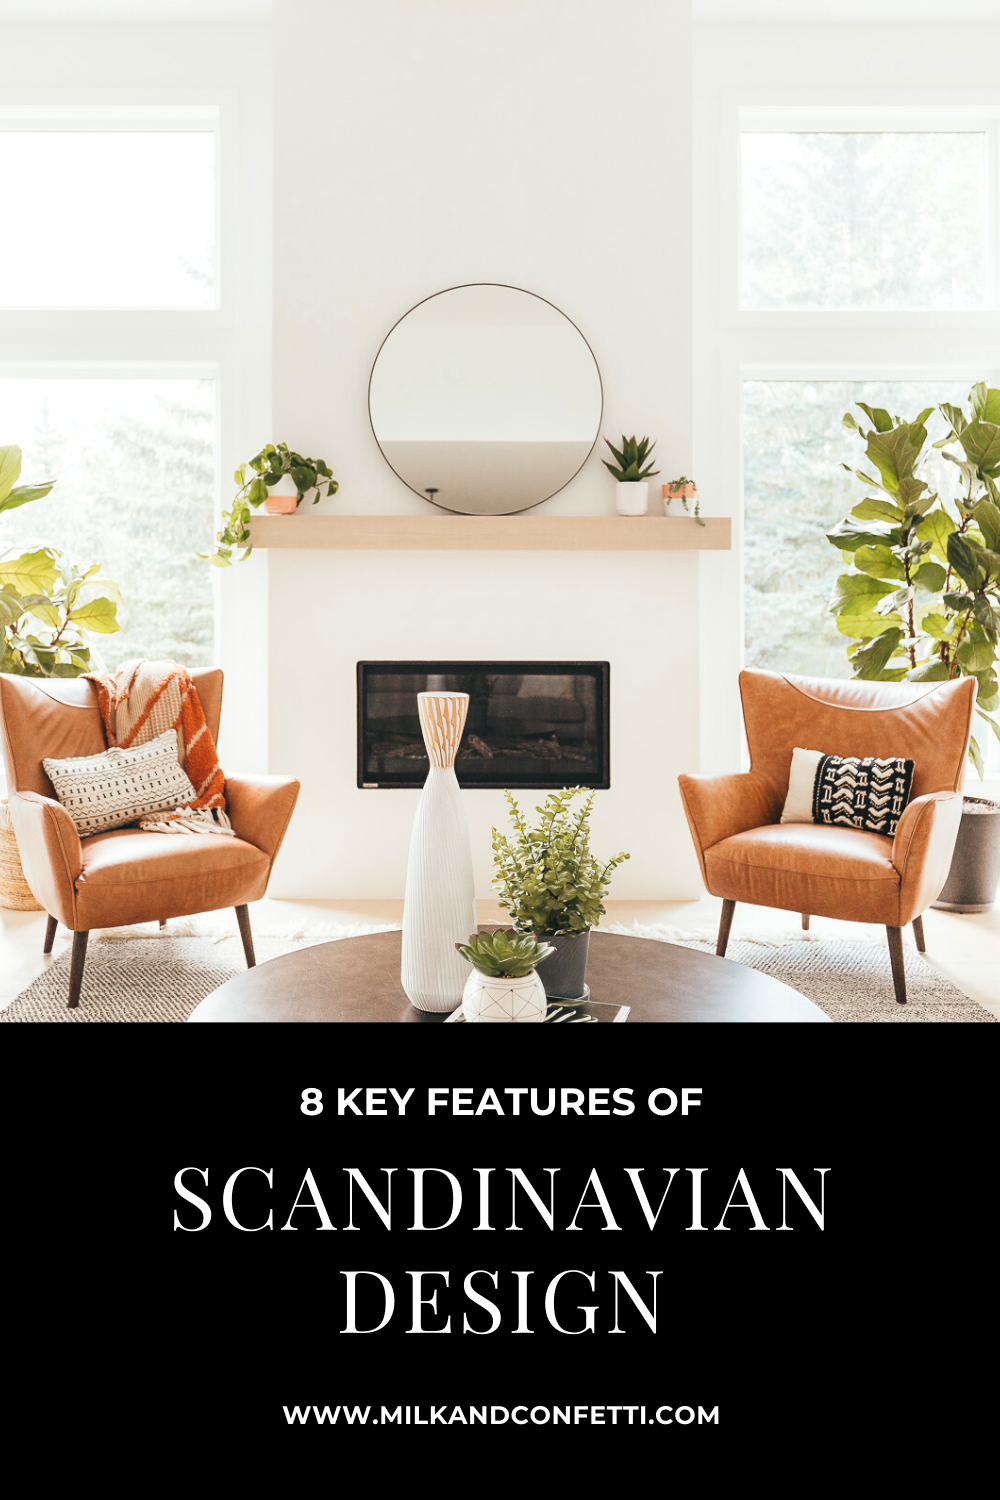 A Scandinavian inspired living room with a round metal coffee table and two brown leather chairs on a black and white wool rug in front of a white linear fireplace with a minimal white oak mantel.